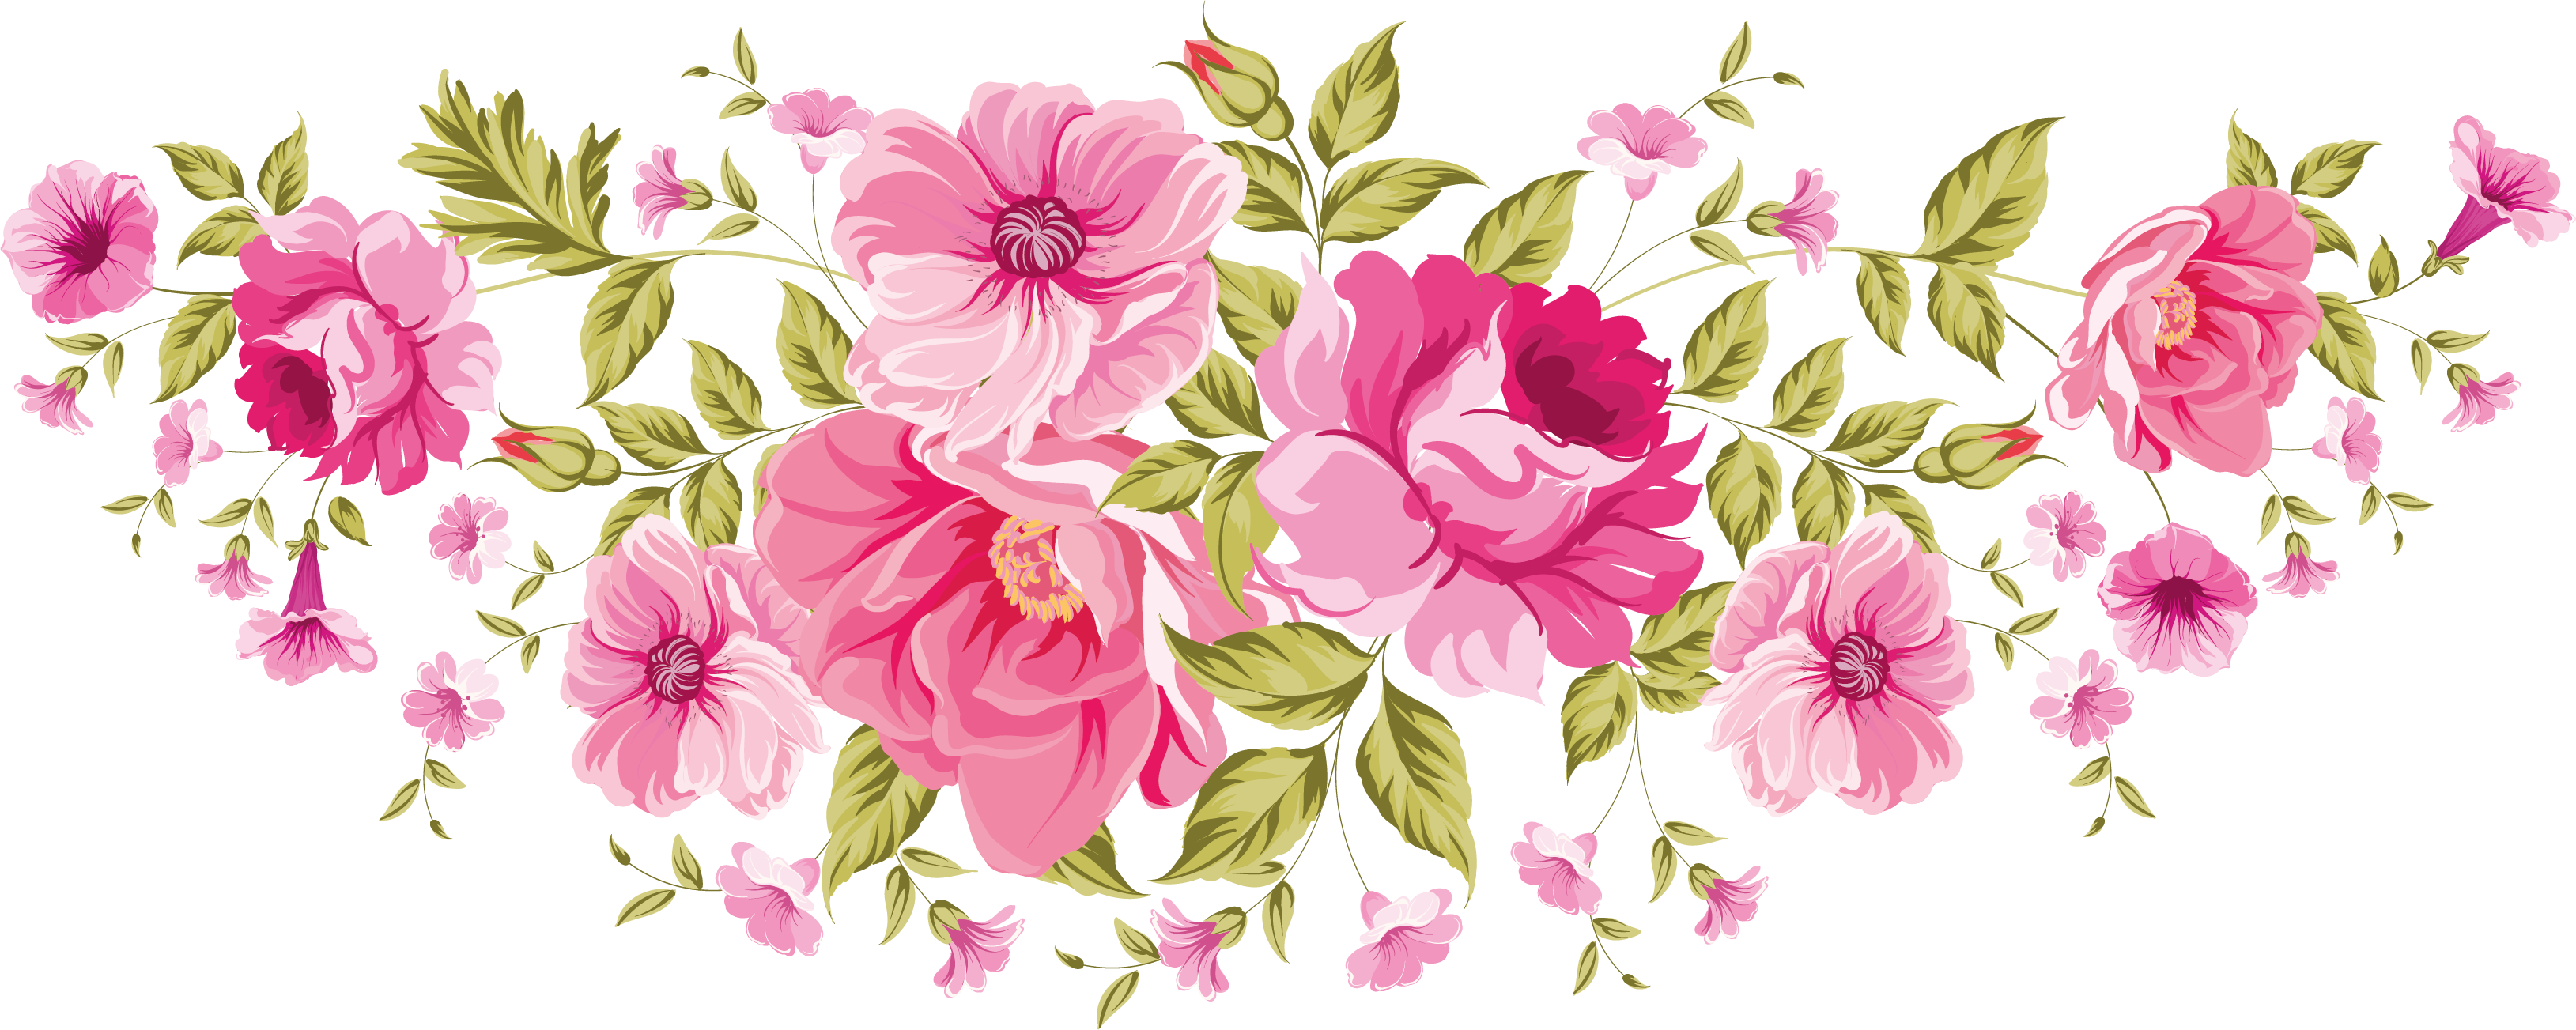 Flowers png. Xxl decoupage pinterest